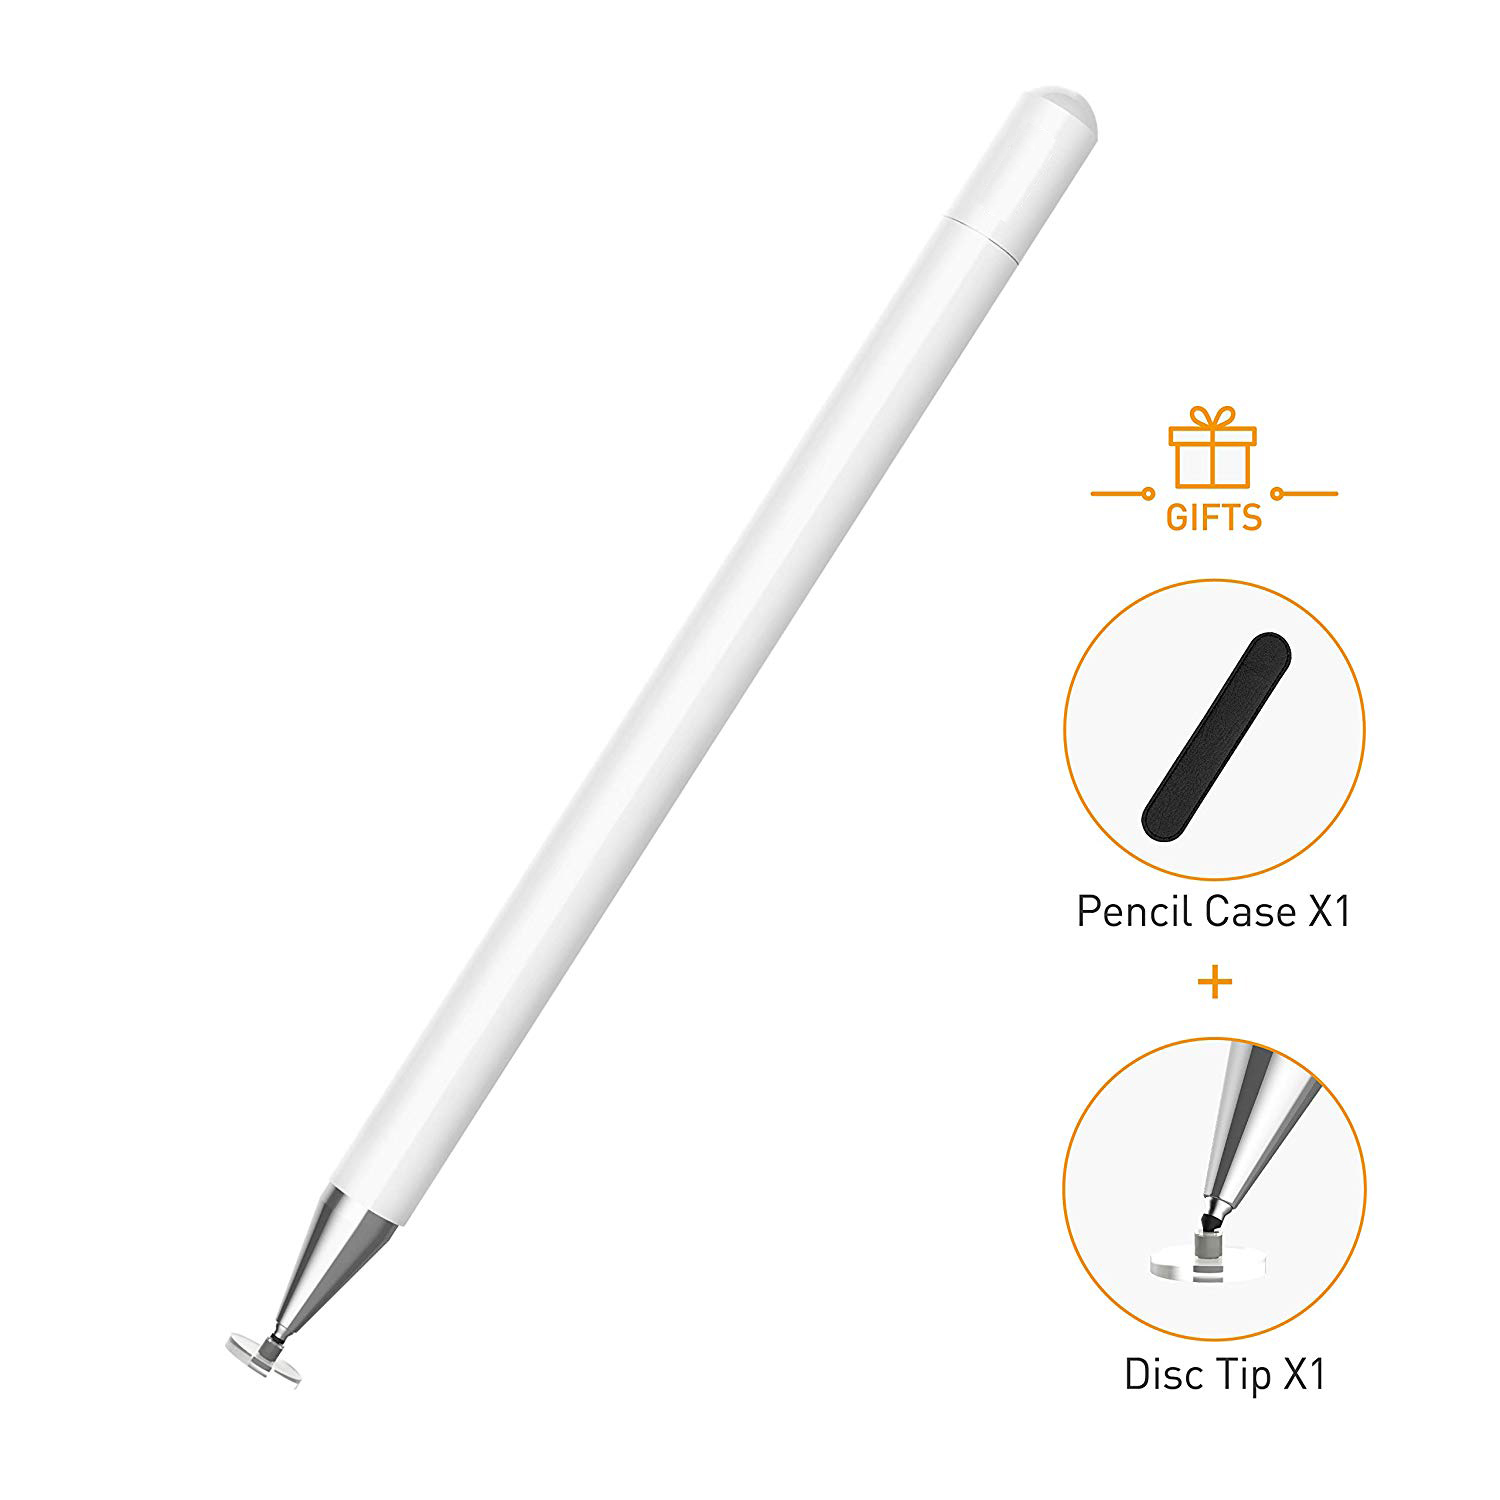 Capacitive Touch Stylus Pen for Apple iPad Galaxy Kindle Fire HDX tablet